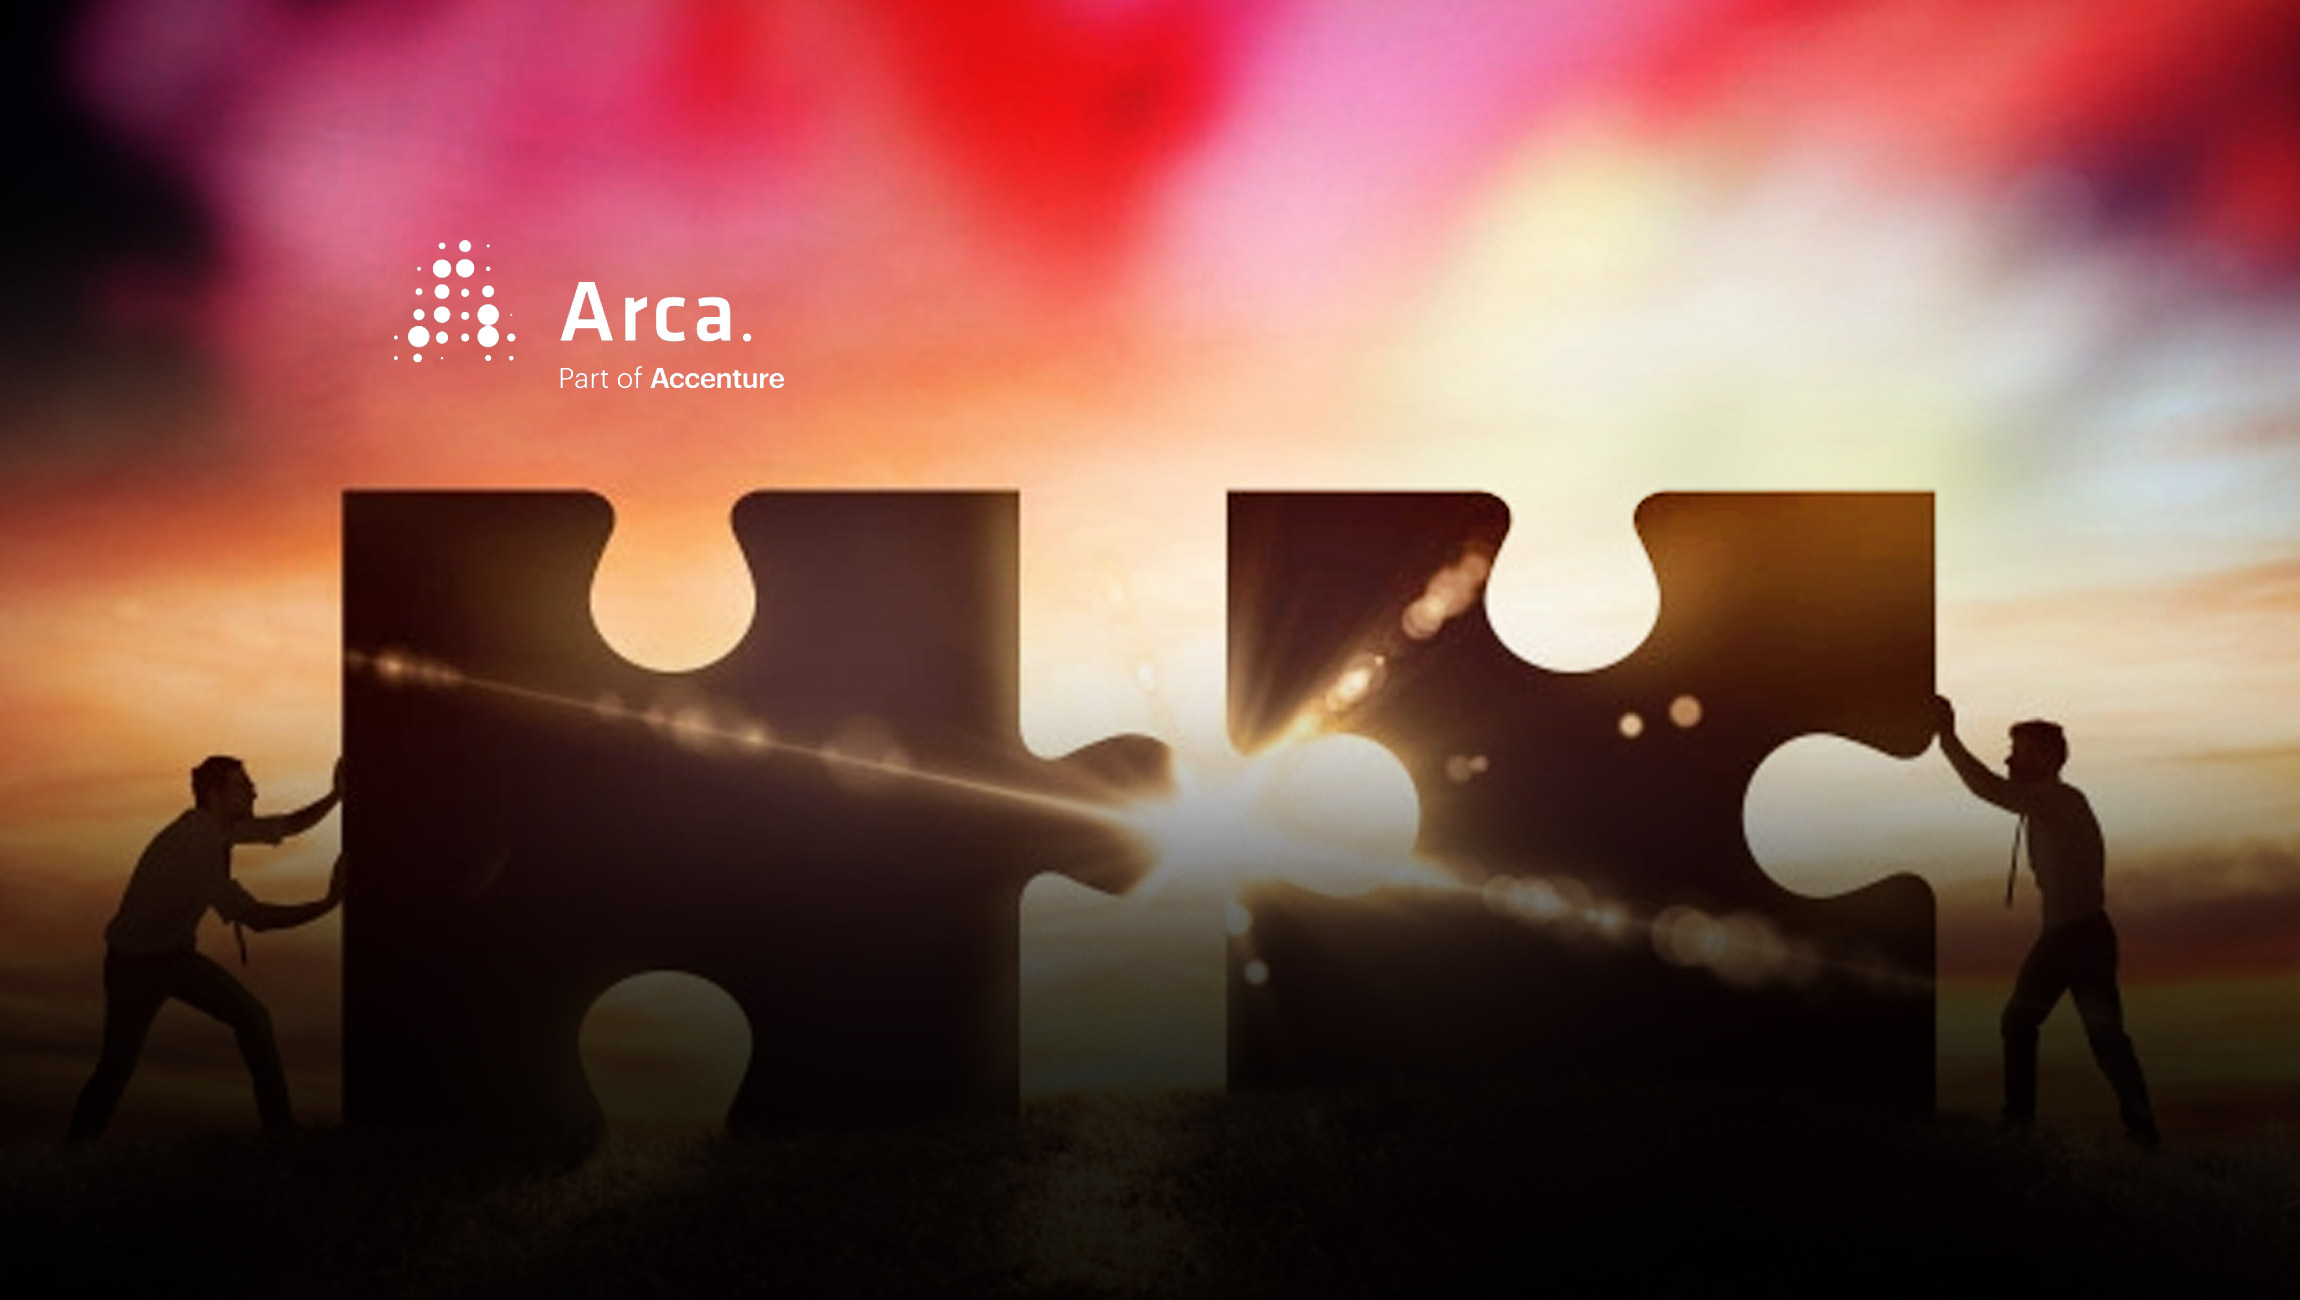 Accenture Acquires Arca to Bolster its 5G Network Capabilities